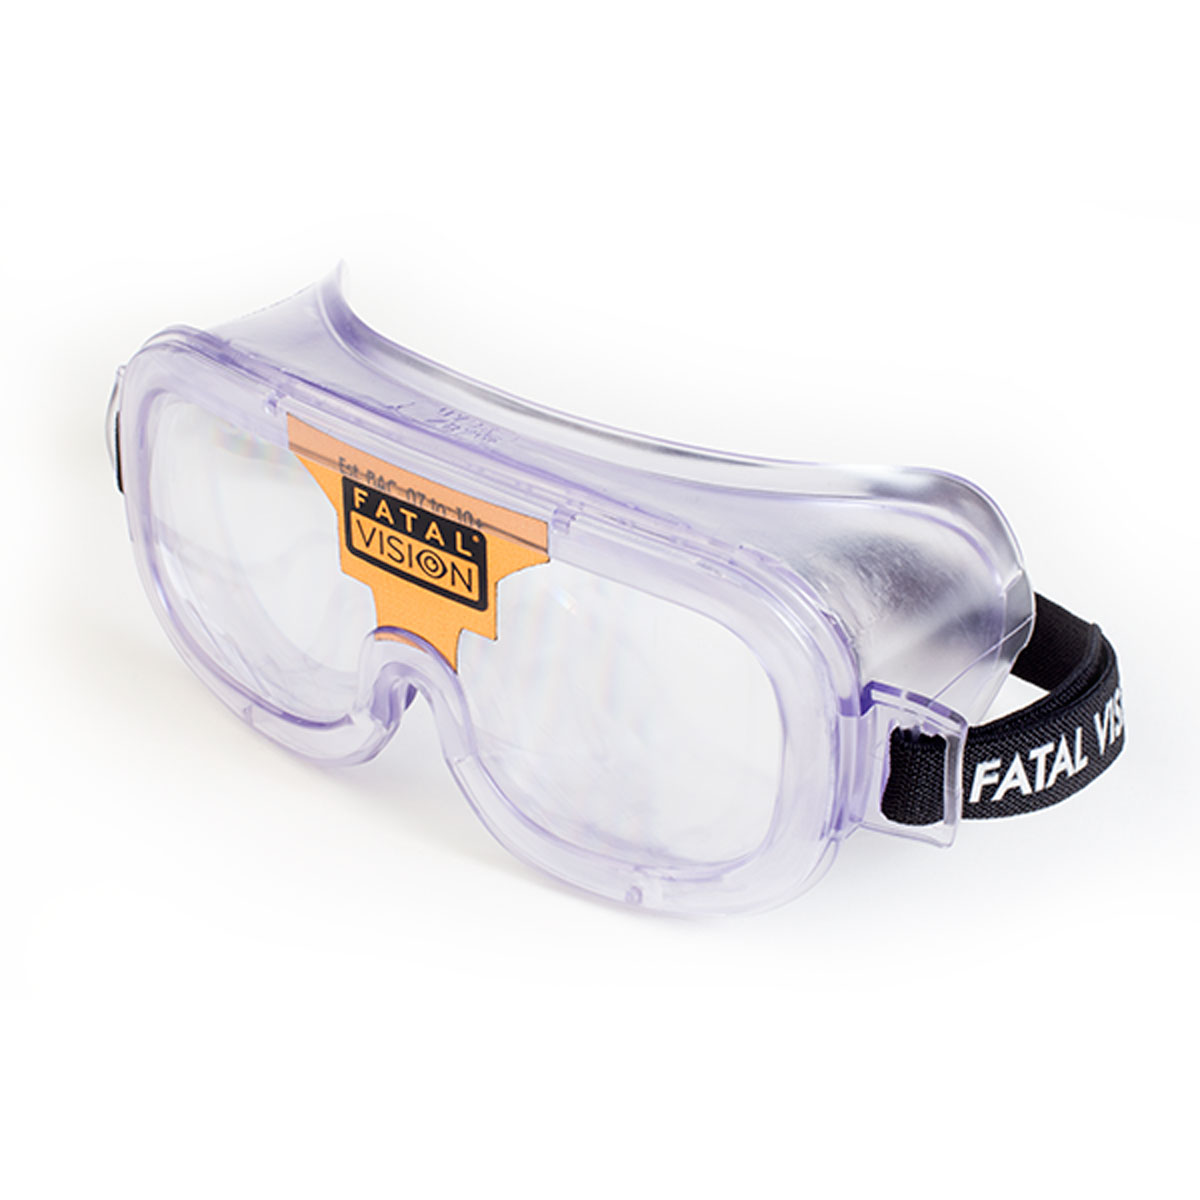 Bac S Simulation Fatal Vision Alcohol Impairment Simulation Goggle